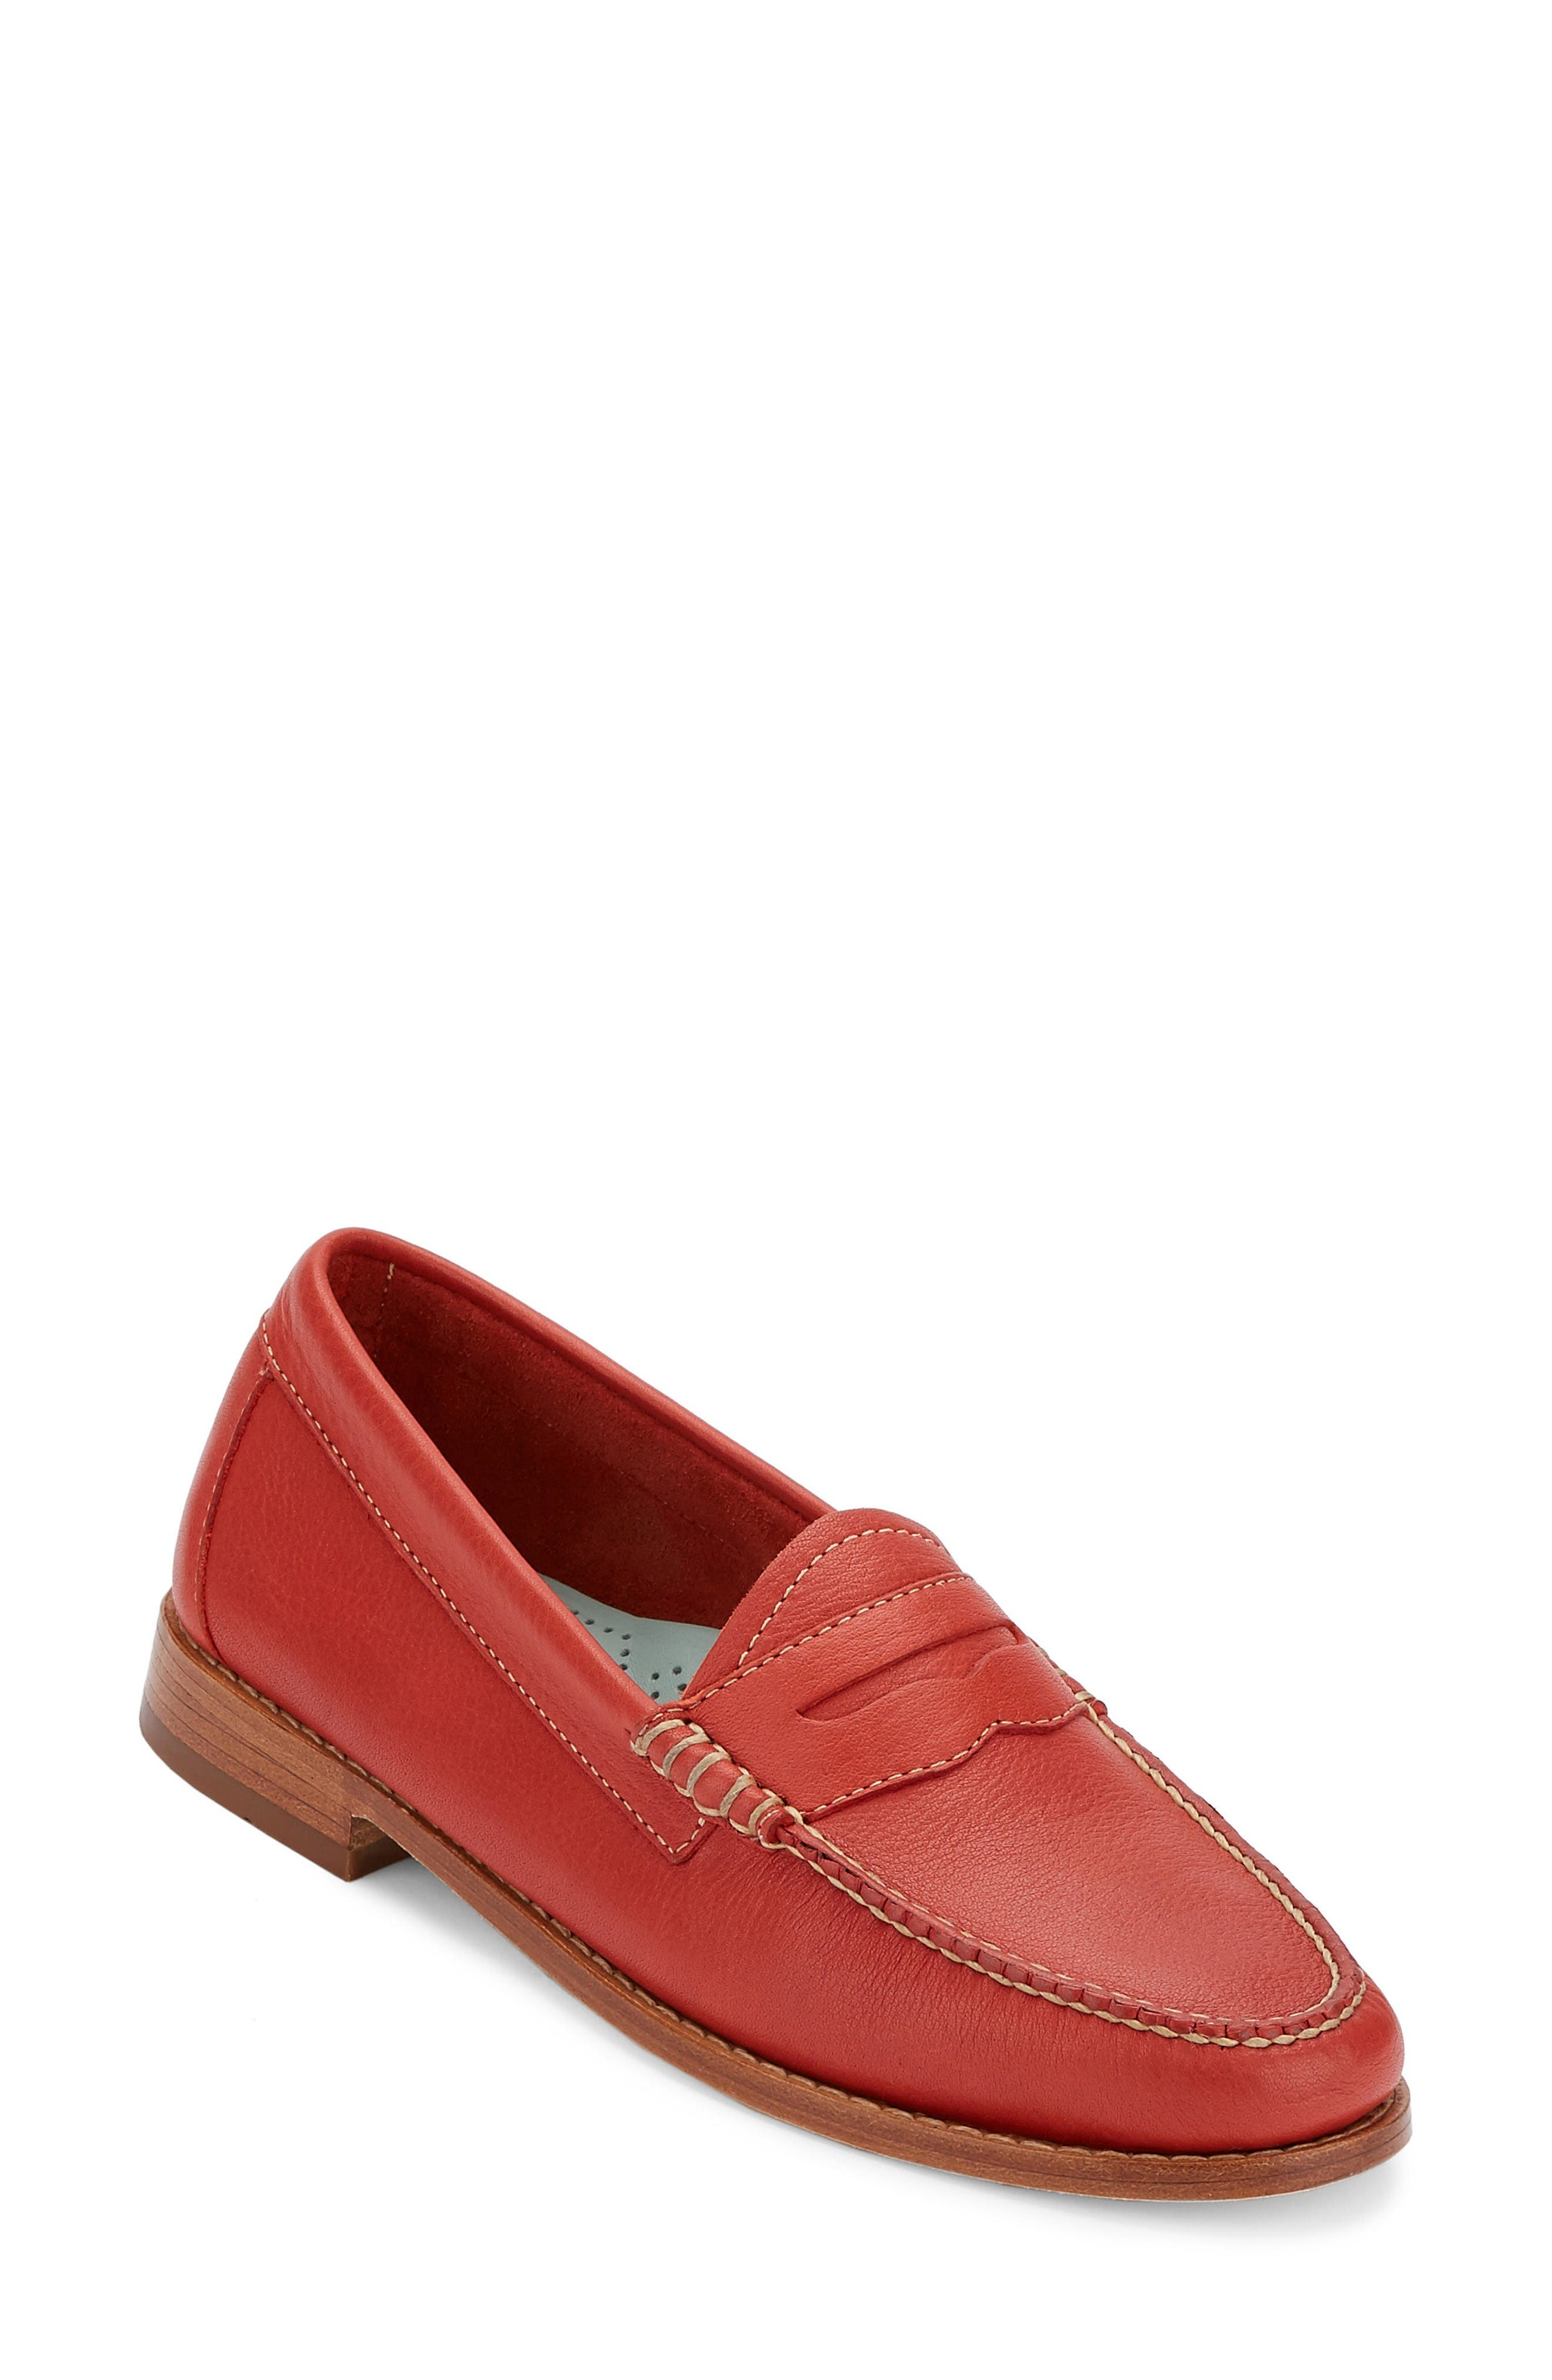 Main Image - G.H. Bass & Co. 'Whitney' Loafer (Women)